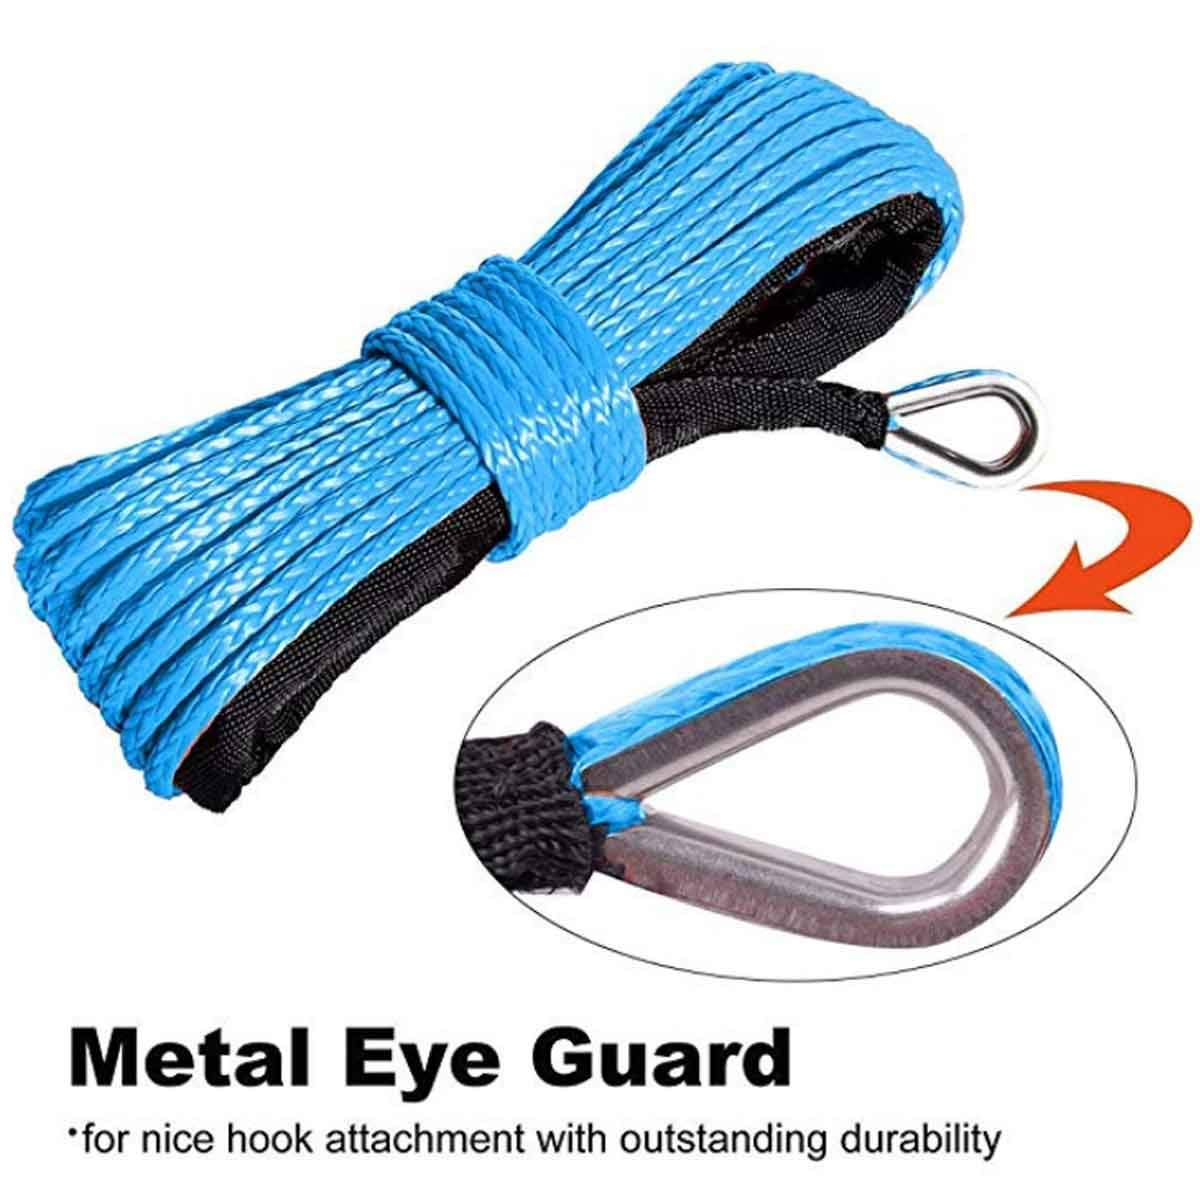 Red Synthetic Winch Rope 1//4 x 50 Nylon Synthetic Winch Cable 8300LBS sheathed Synthetic Winch for Winch ATV UTV SUV Winch Truck